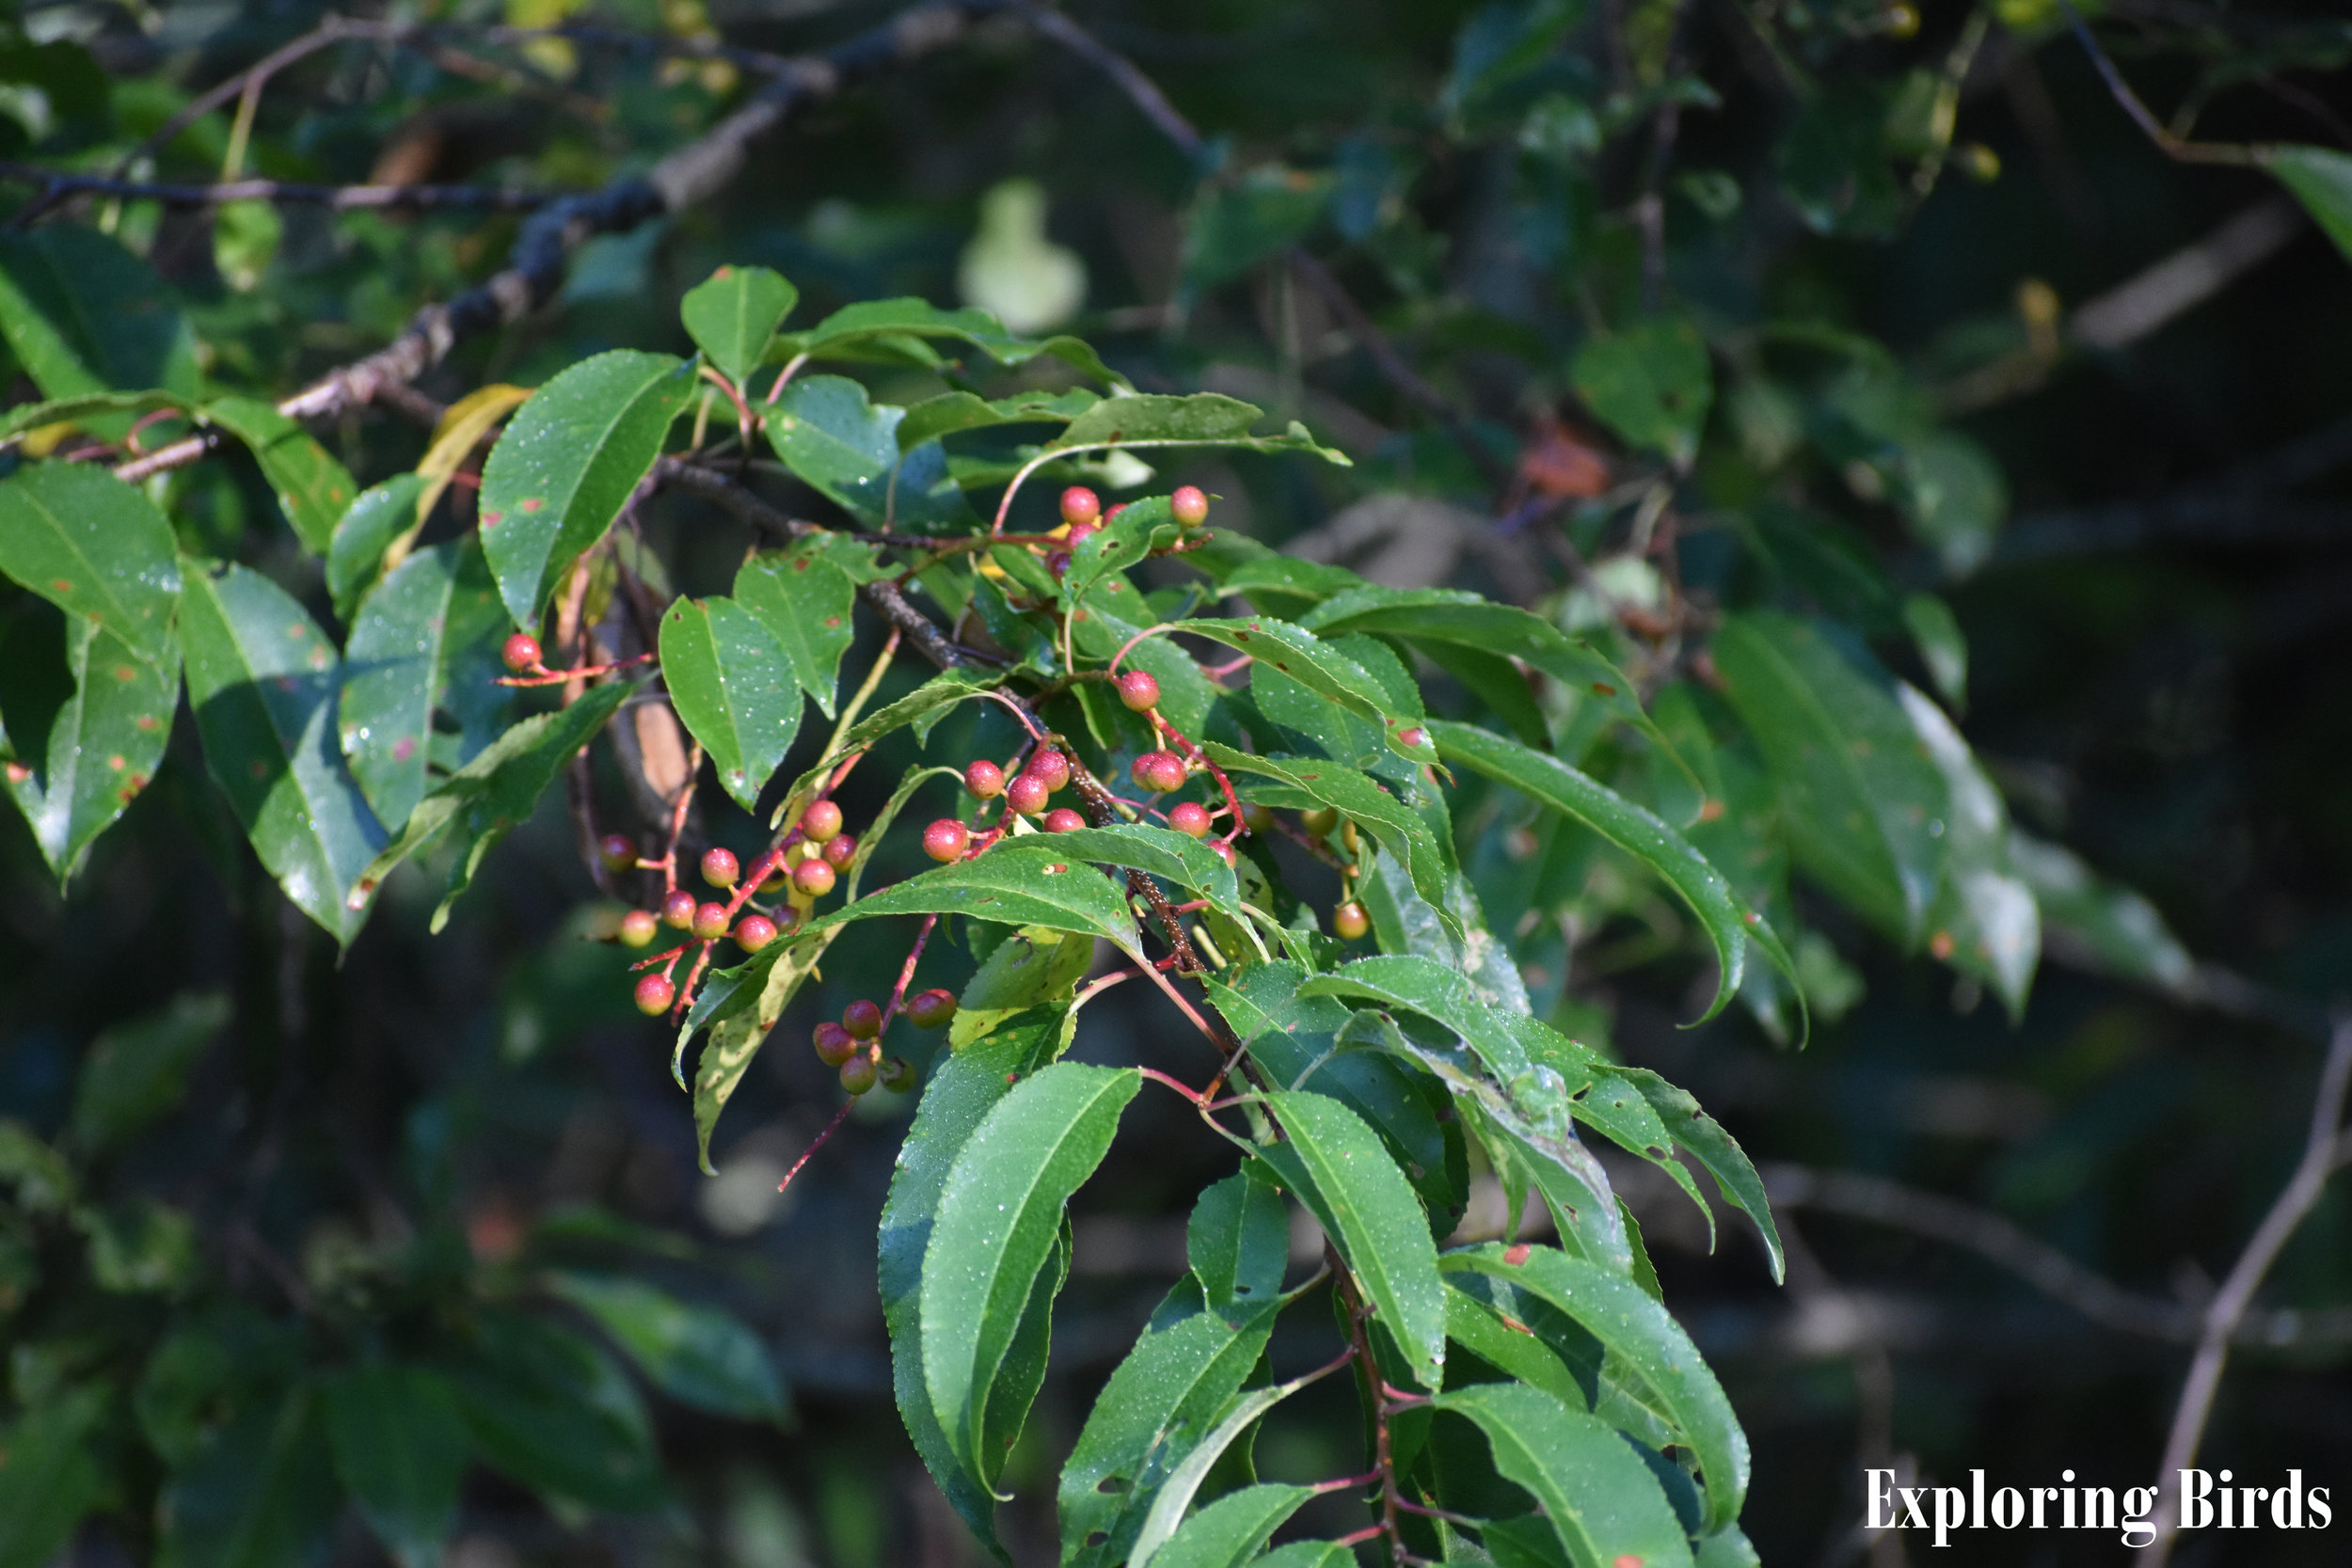 Wild Black Cherry produces cherries that are eaten by many birds